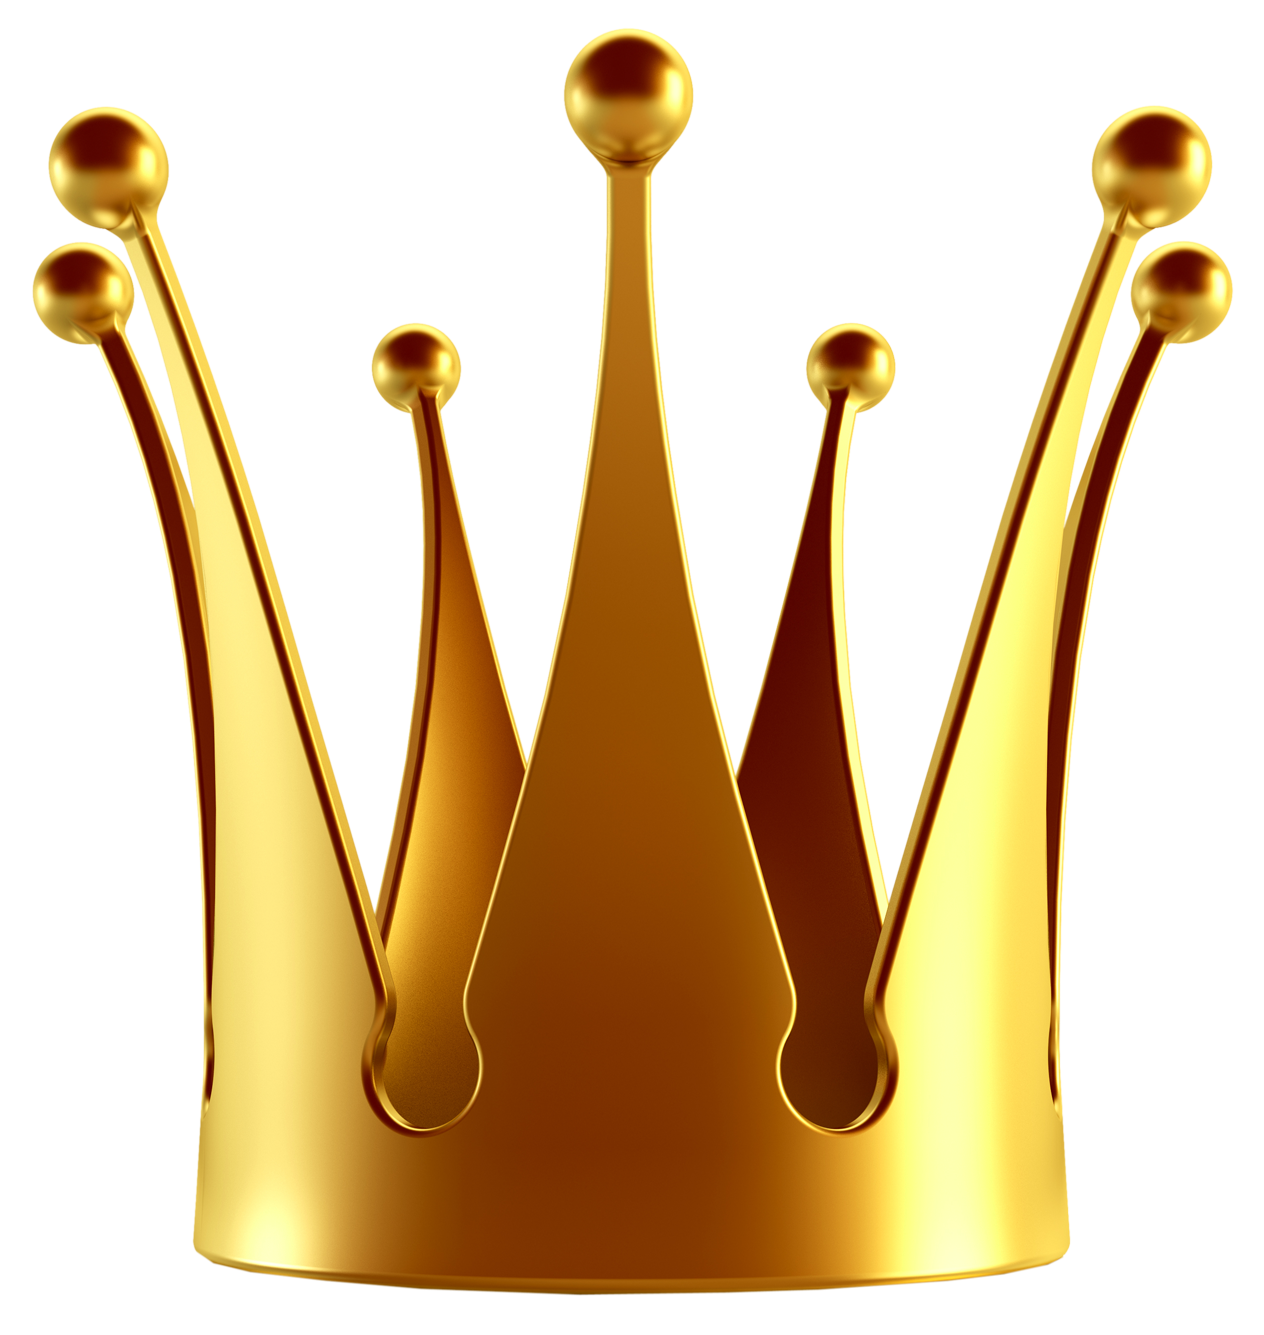 Gold Crown Clip Art - Cliparts.co